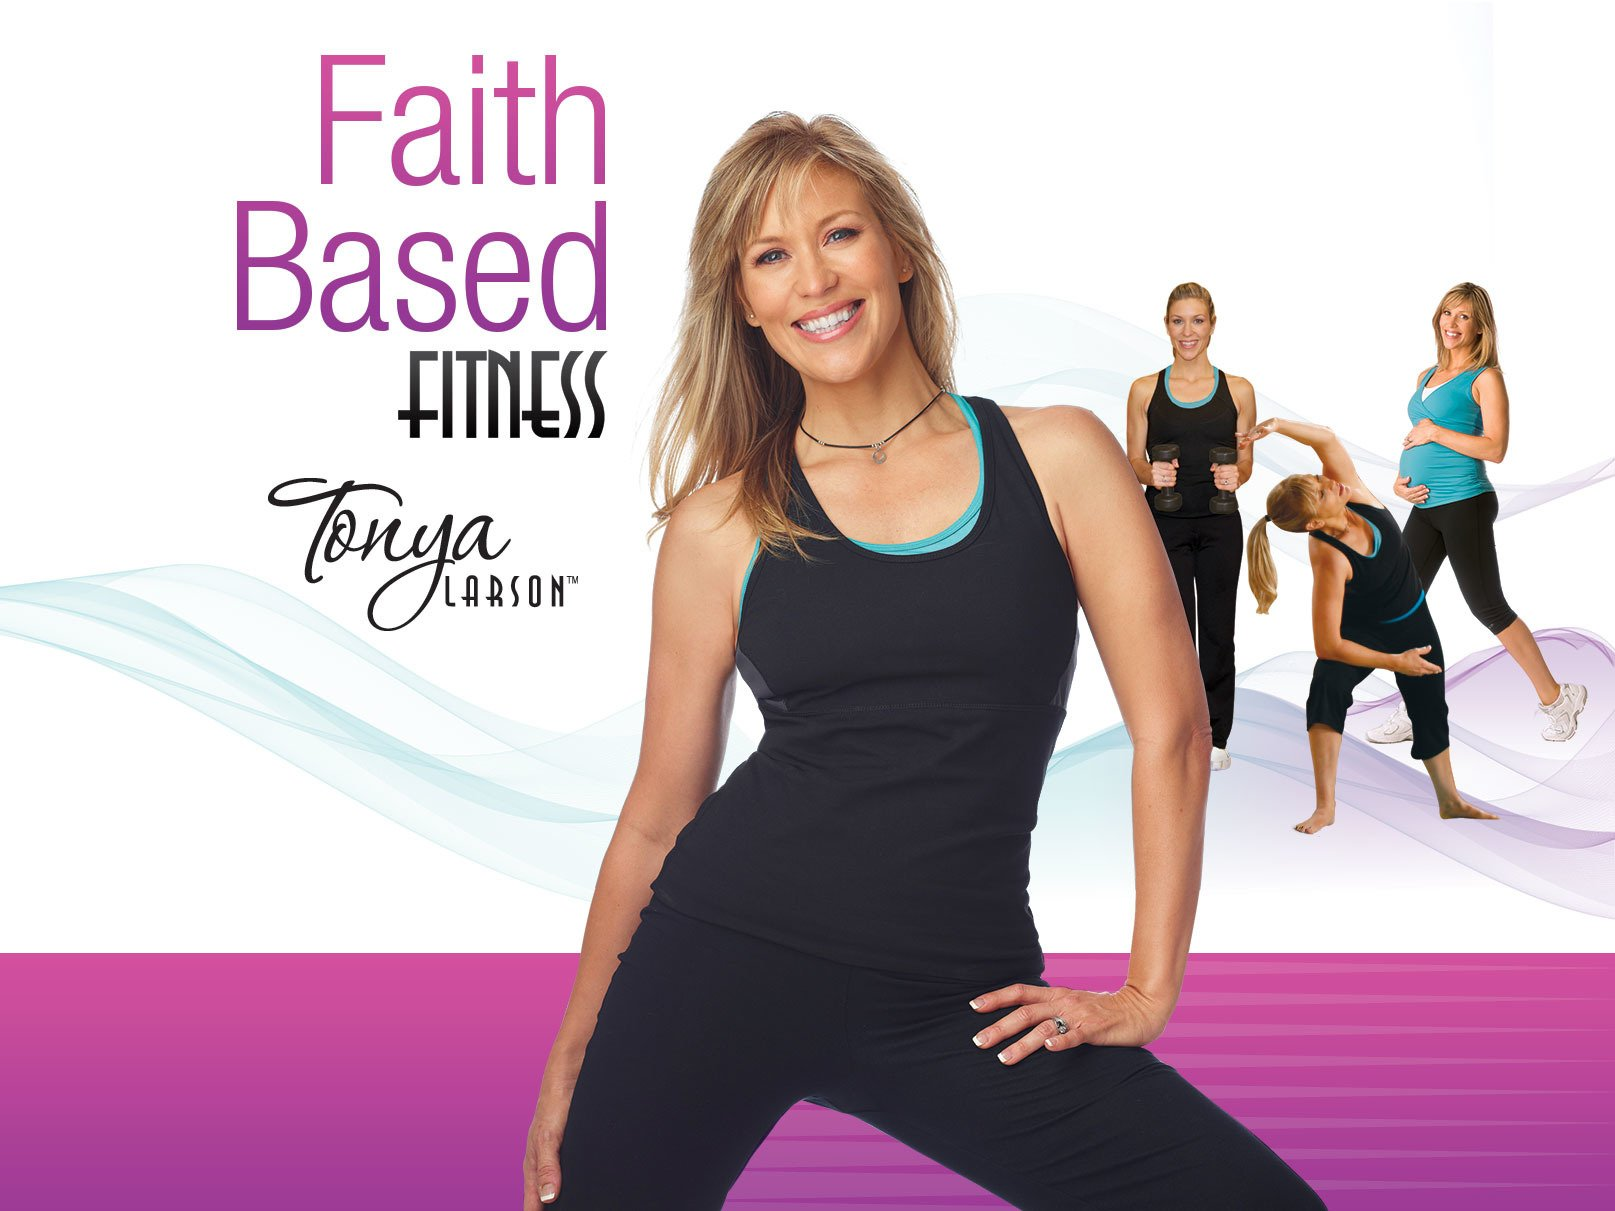 Fatih Based Fitness with Tonya Larson - Season 1